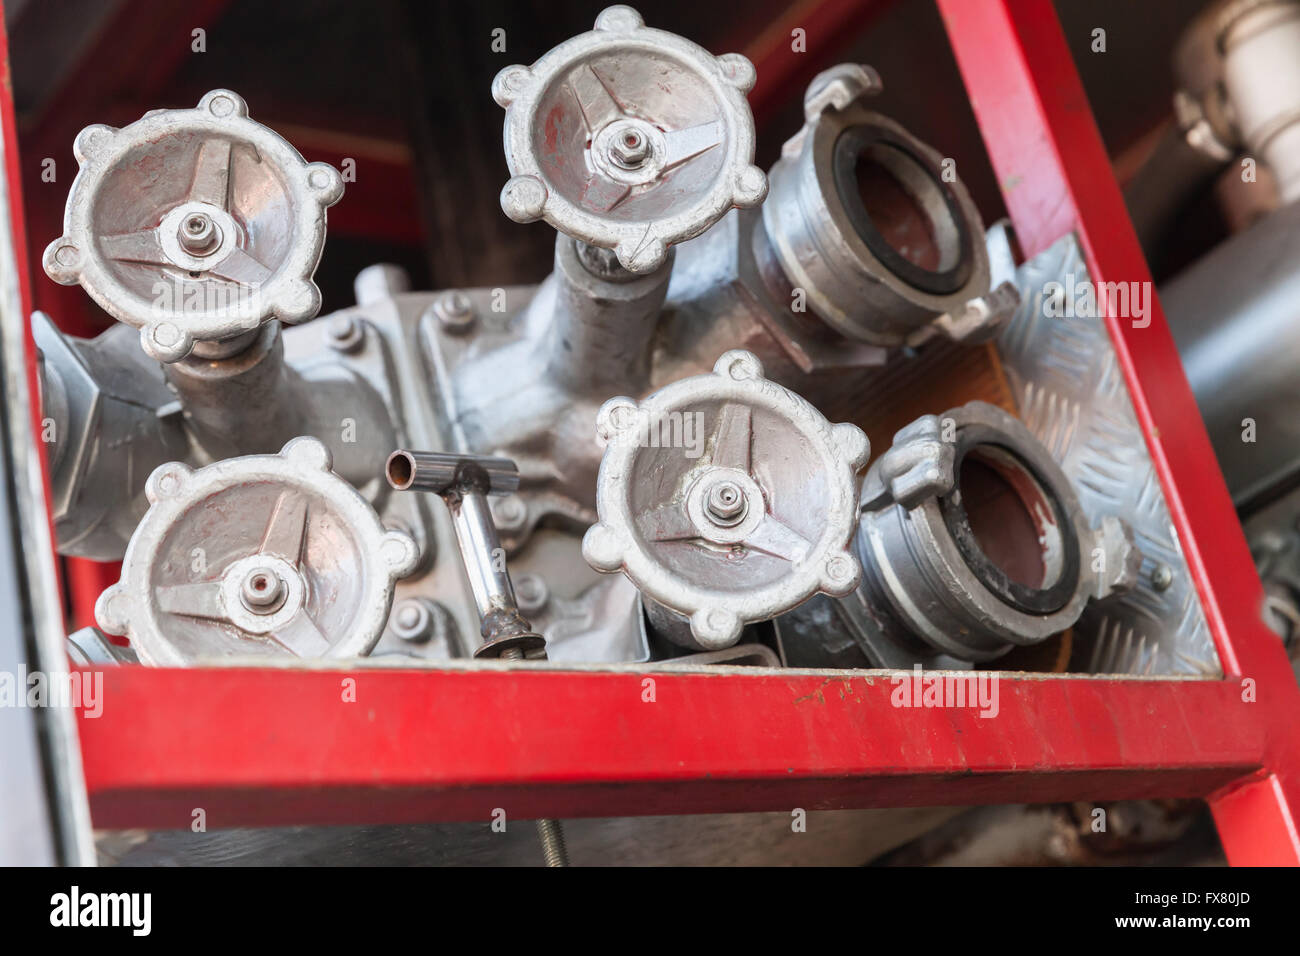 Firefighting equipment on red fire truck. Water hydrants closeup photo with selective focus - Stock Image